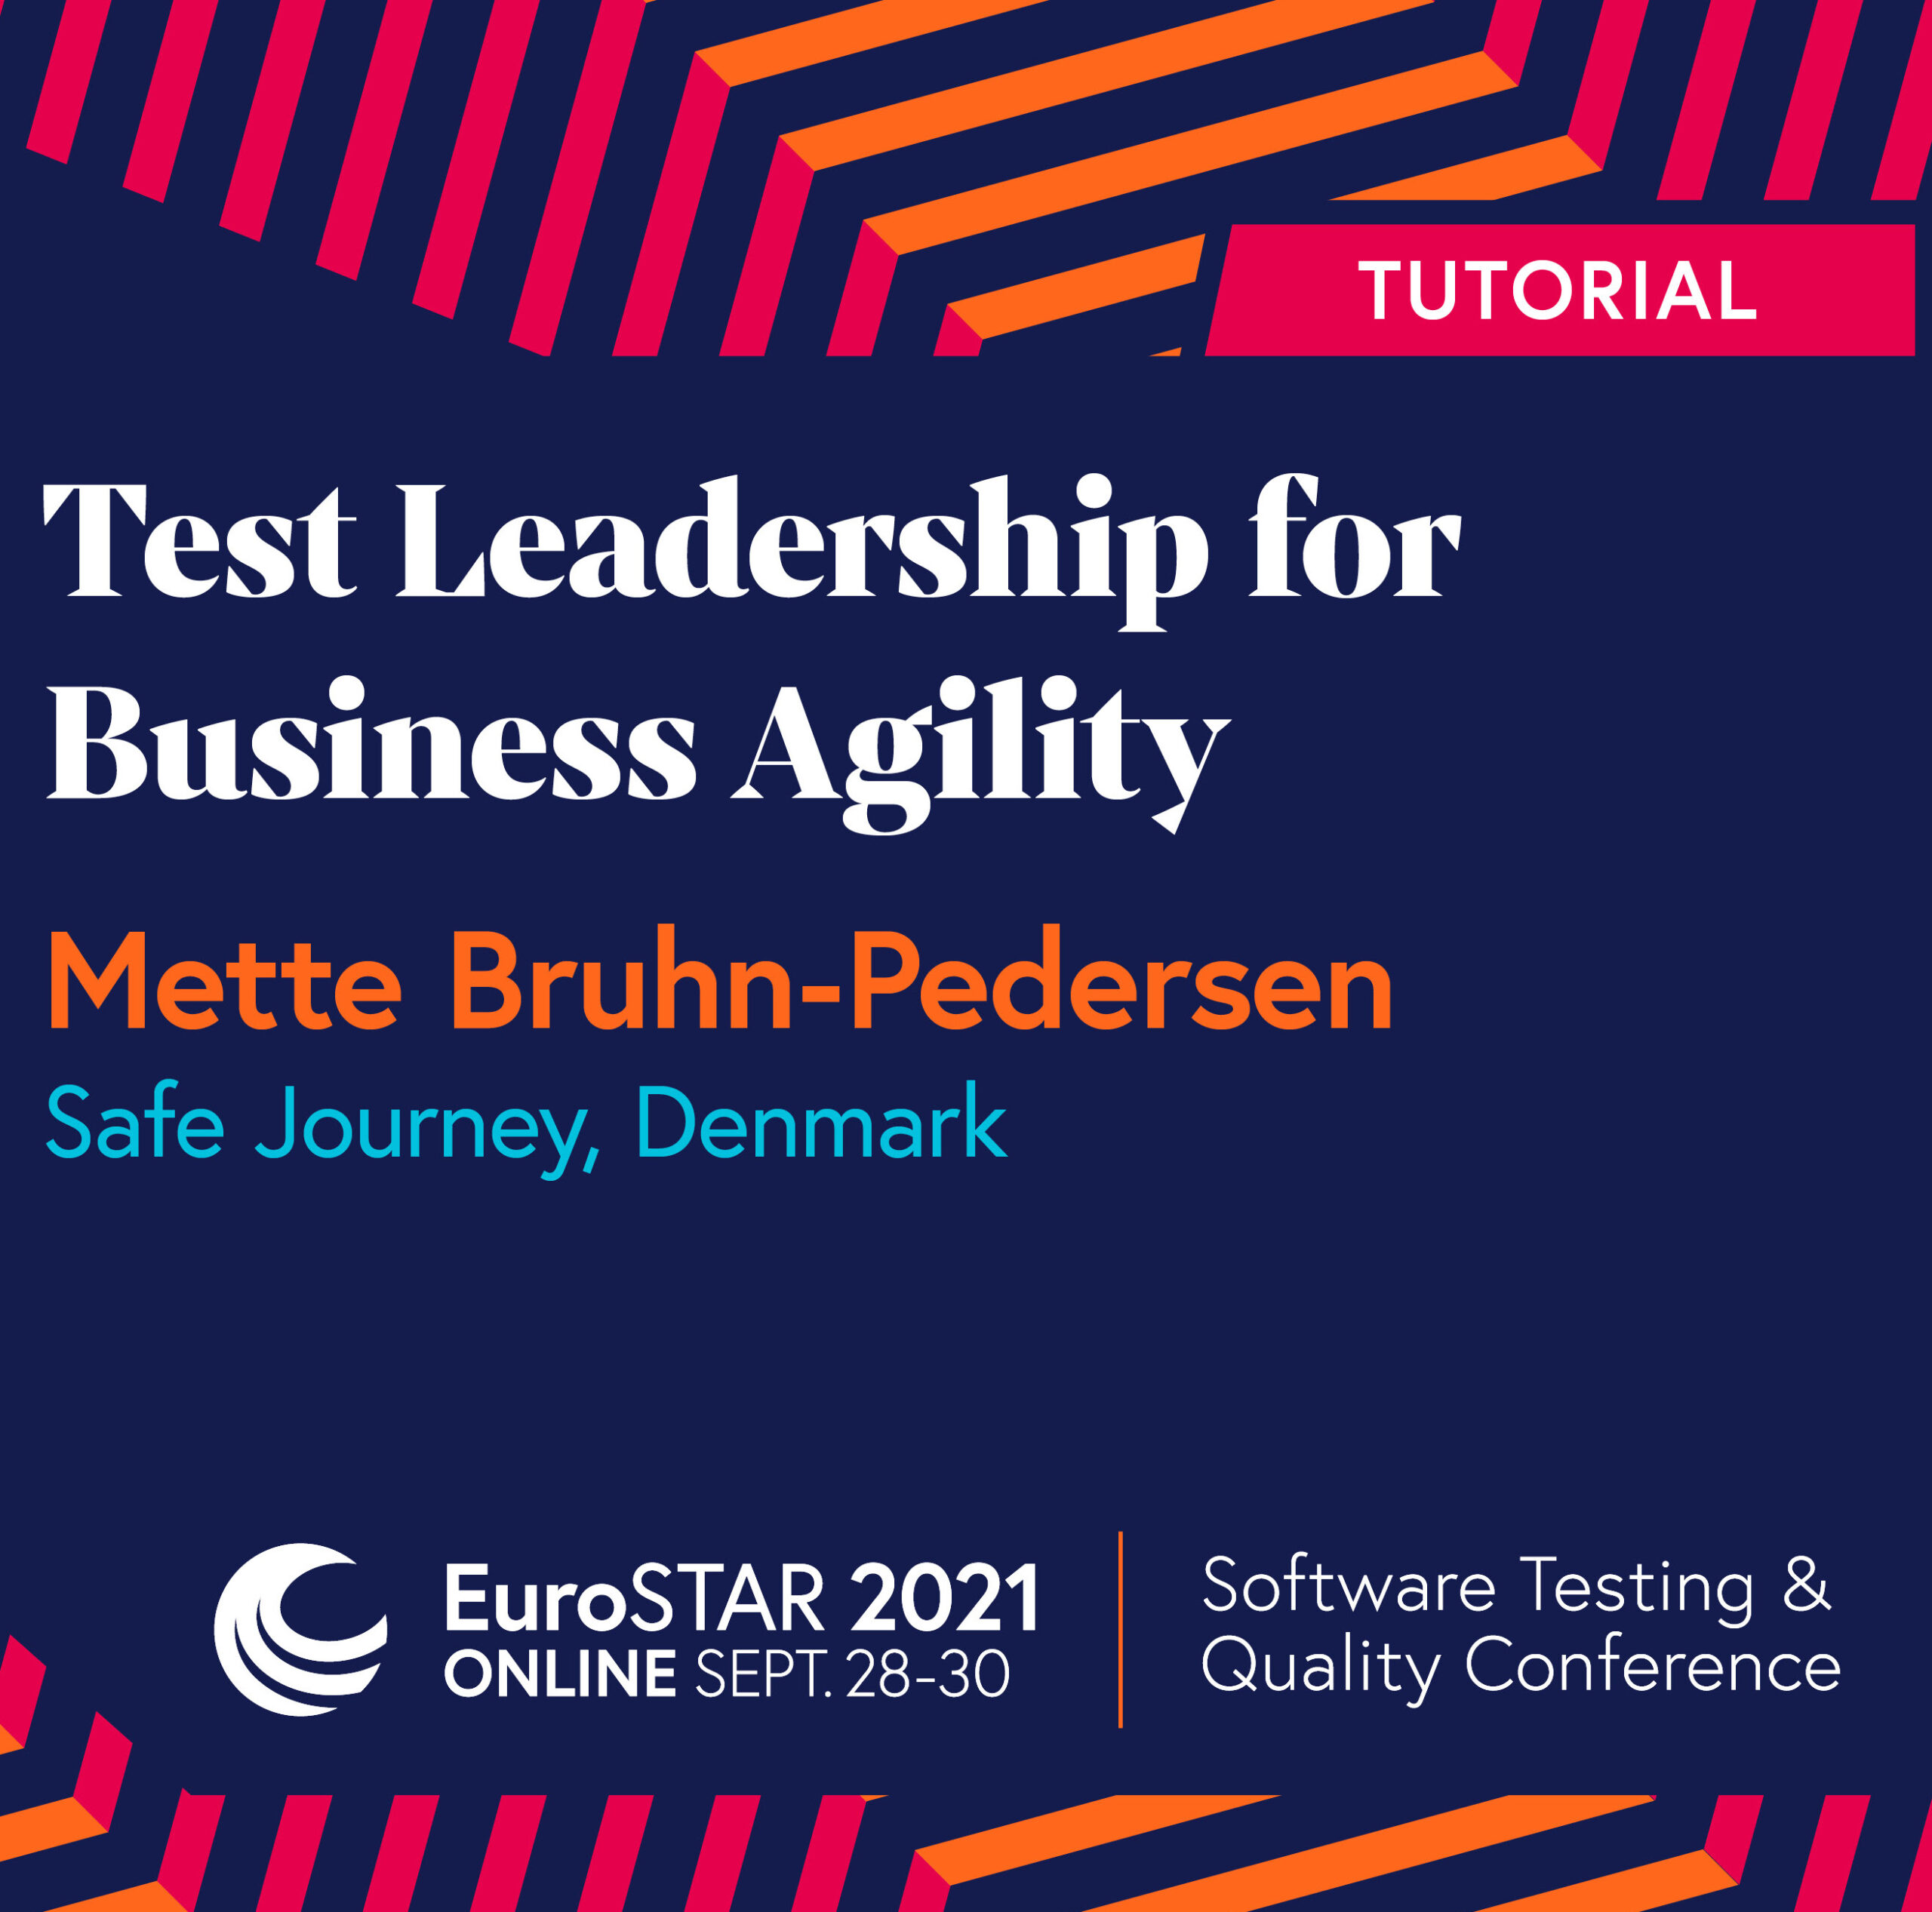 Tutorial about Test Leadership for Business Agility